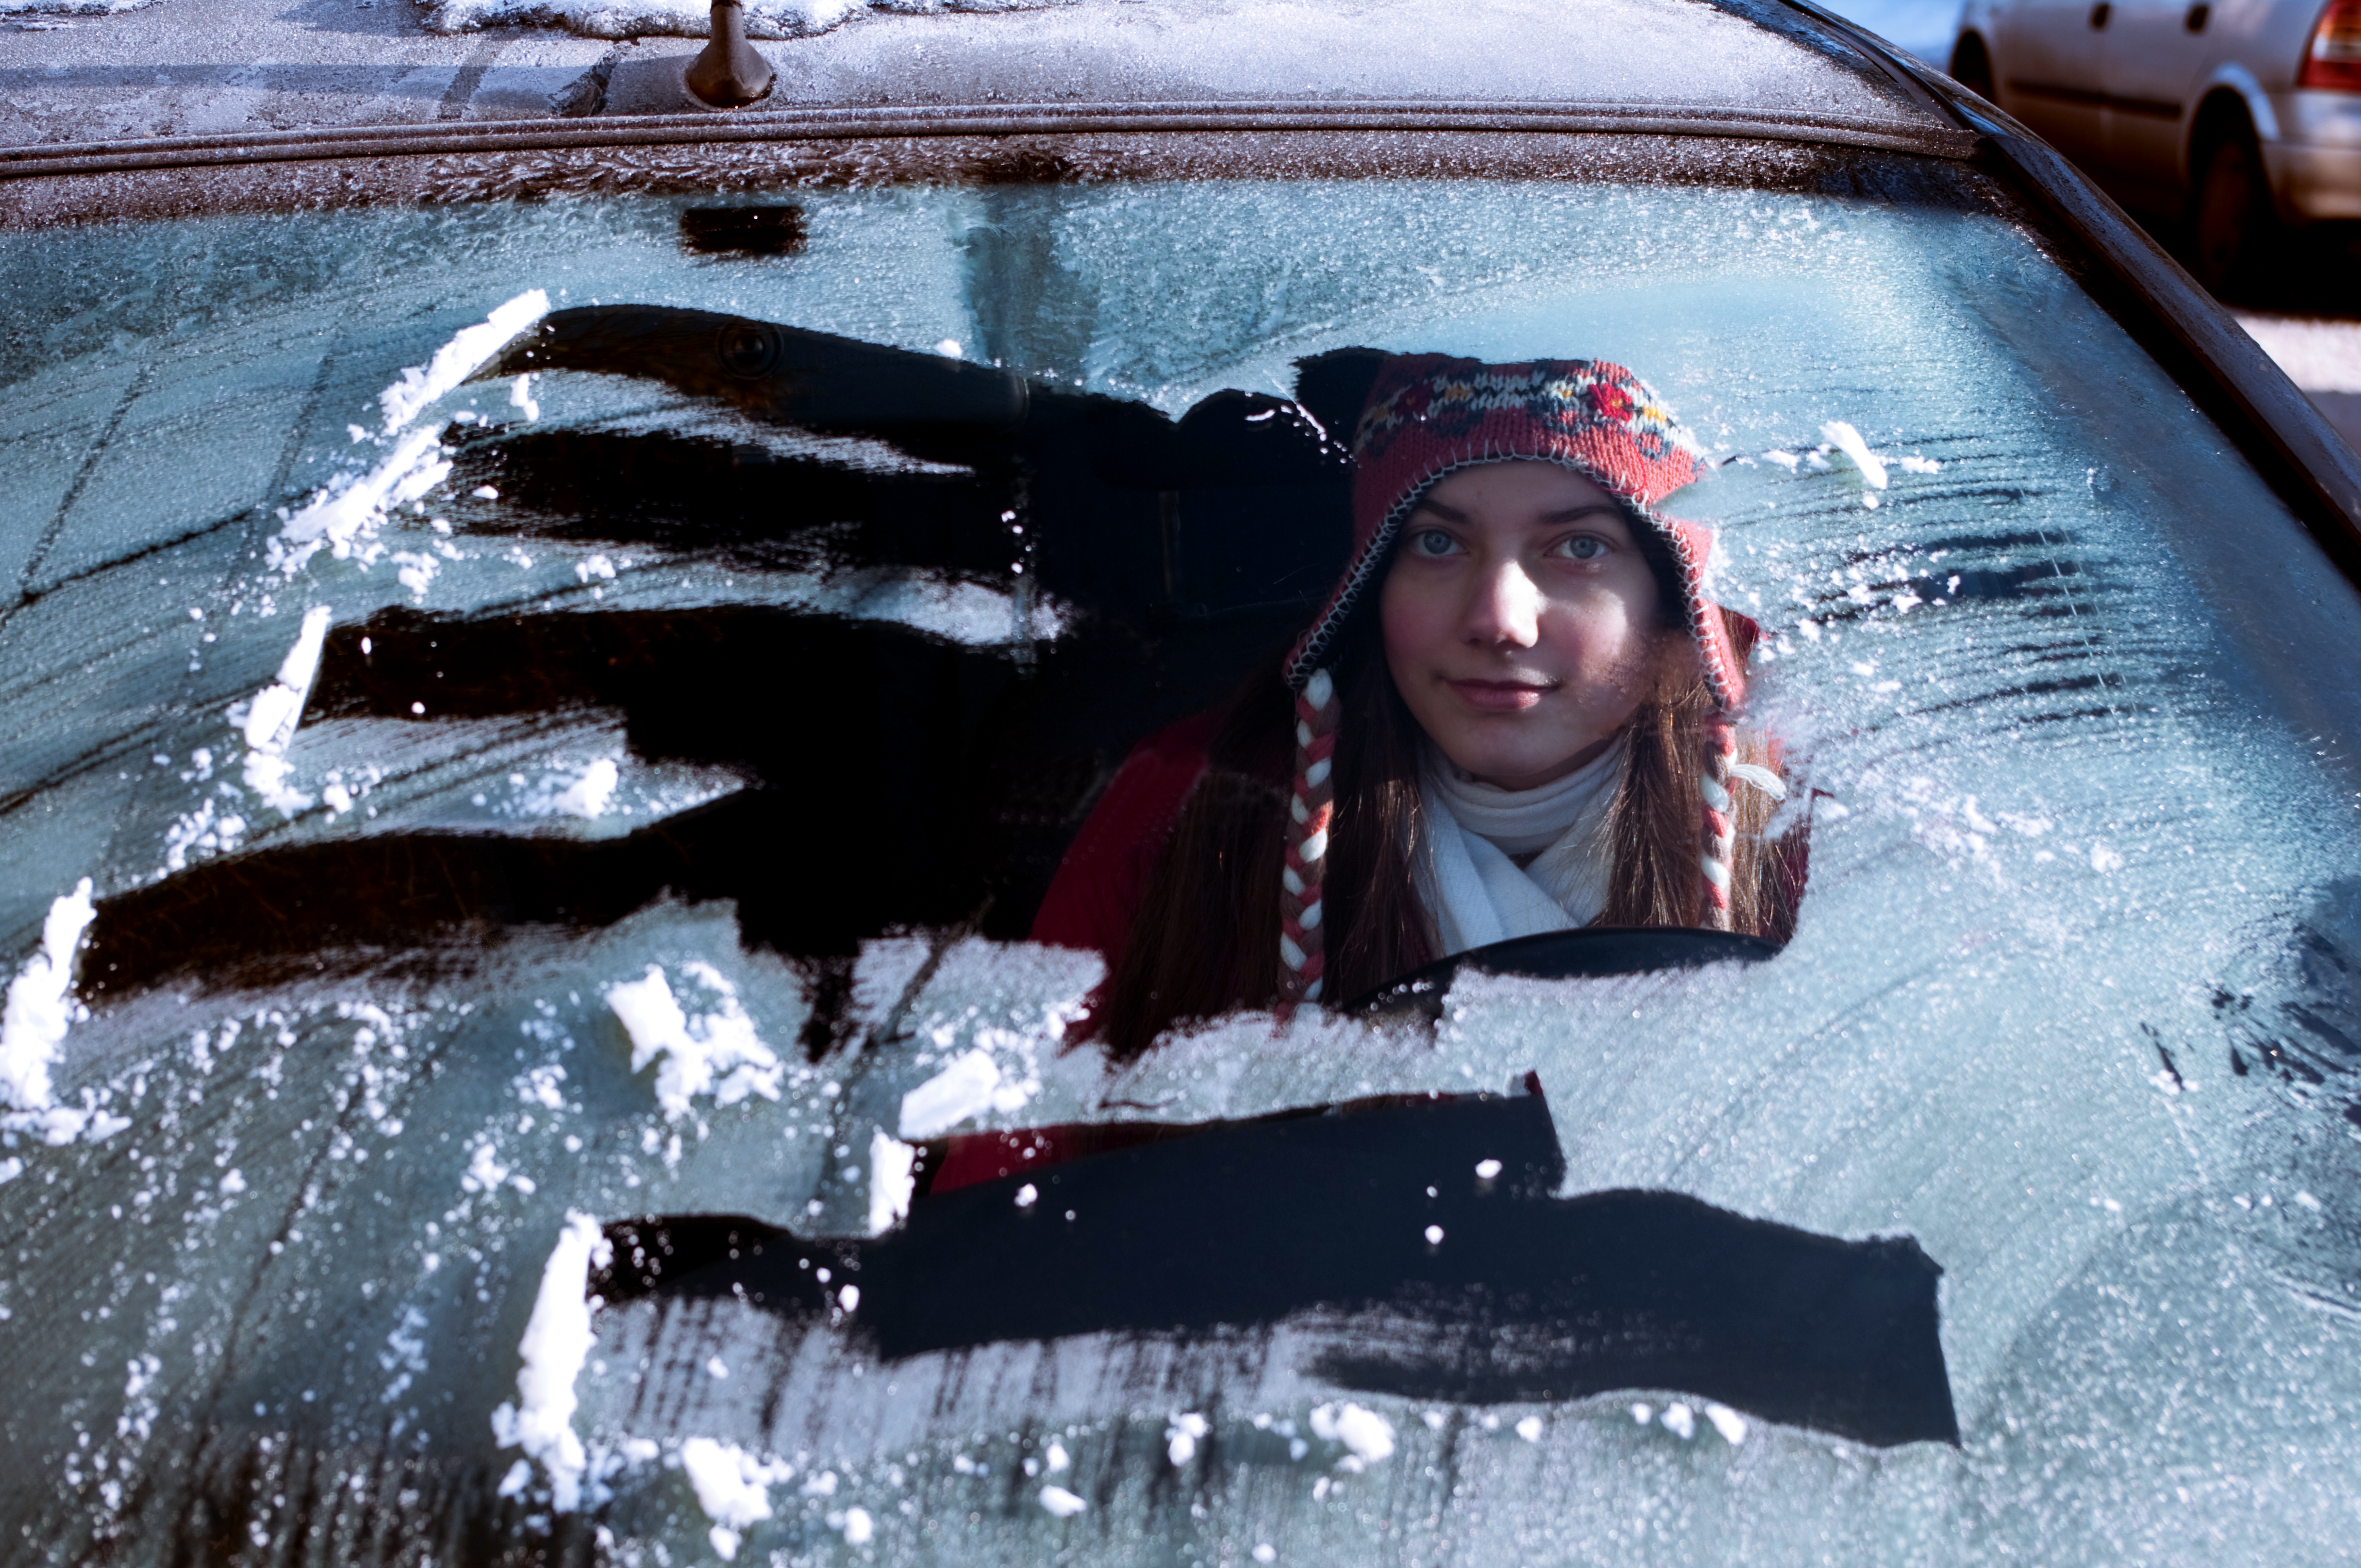 Young female driving a car, but did not scrap all of the snow off of the windshield.>From Media Library>From Media Library>From Media Library